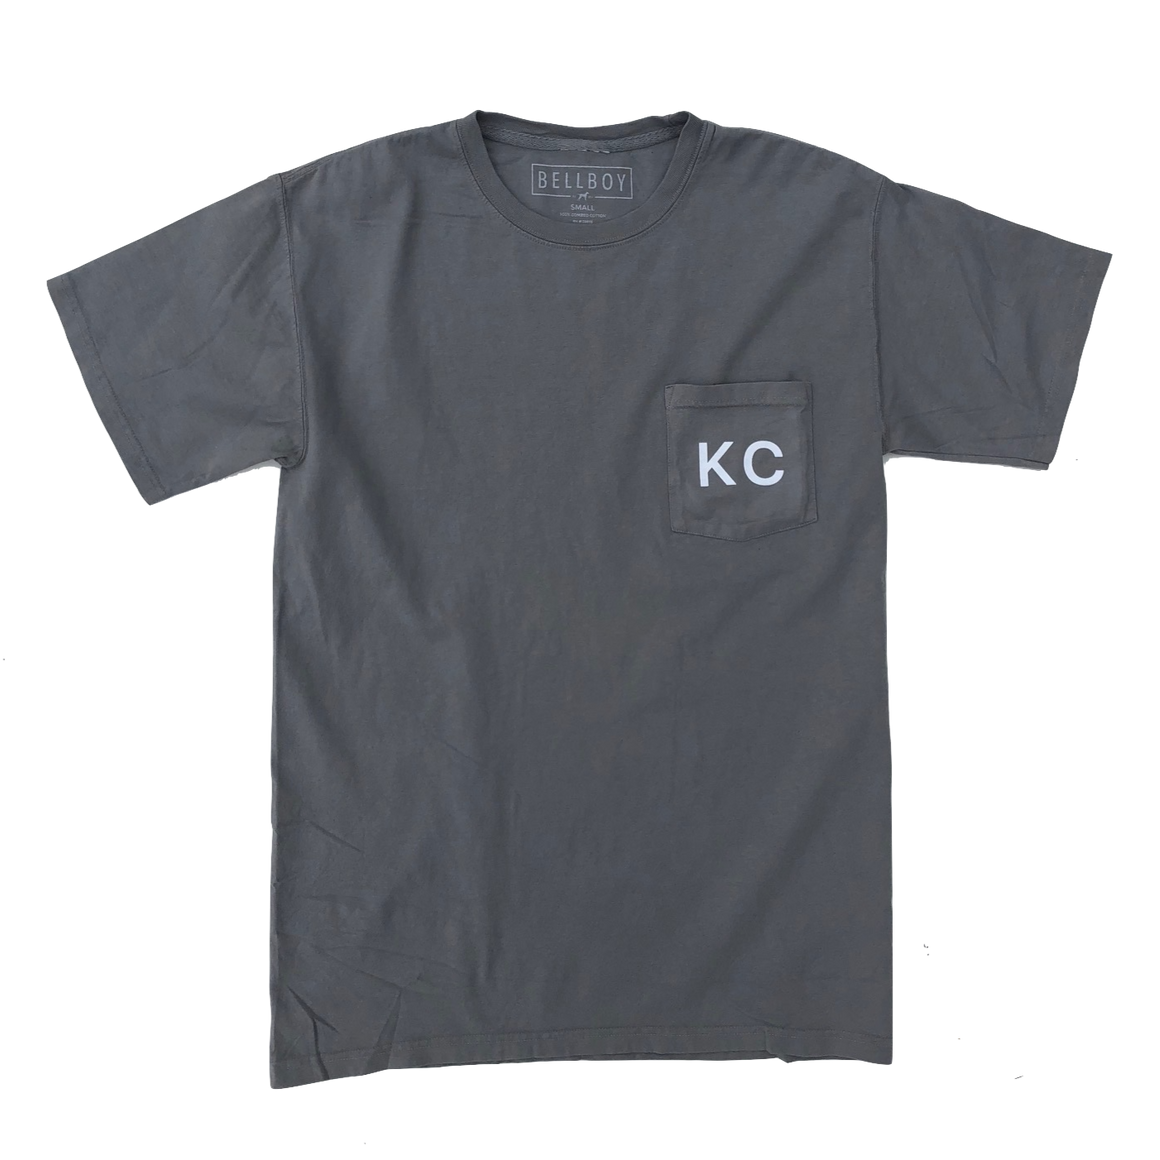 BELLBOY | KC POCKET T-SHIRT - CONCRETE GREY